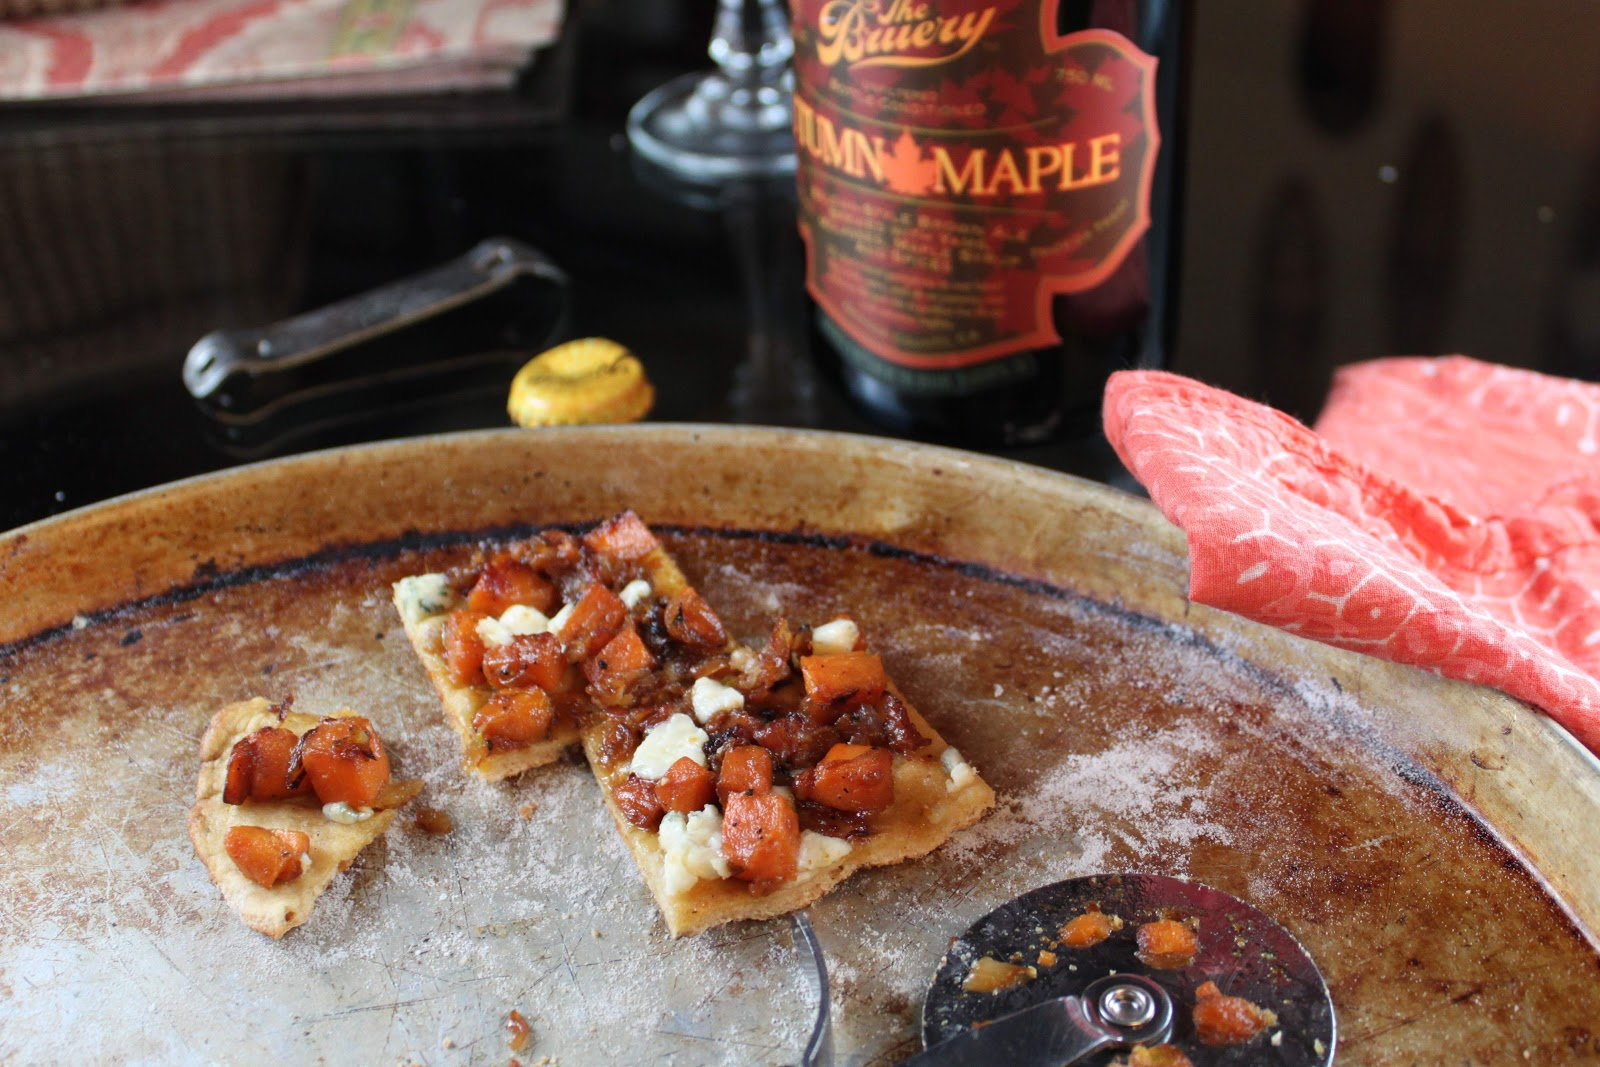 ... Happy Blog: Sweet Potato, Pancetta and Blue Cheese Grilled Beer Pizza